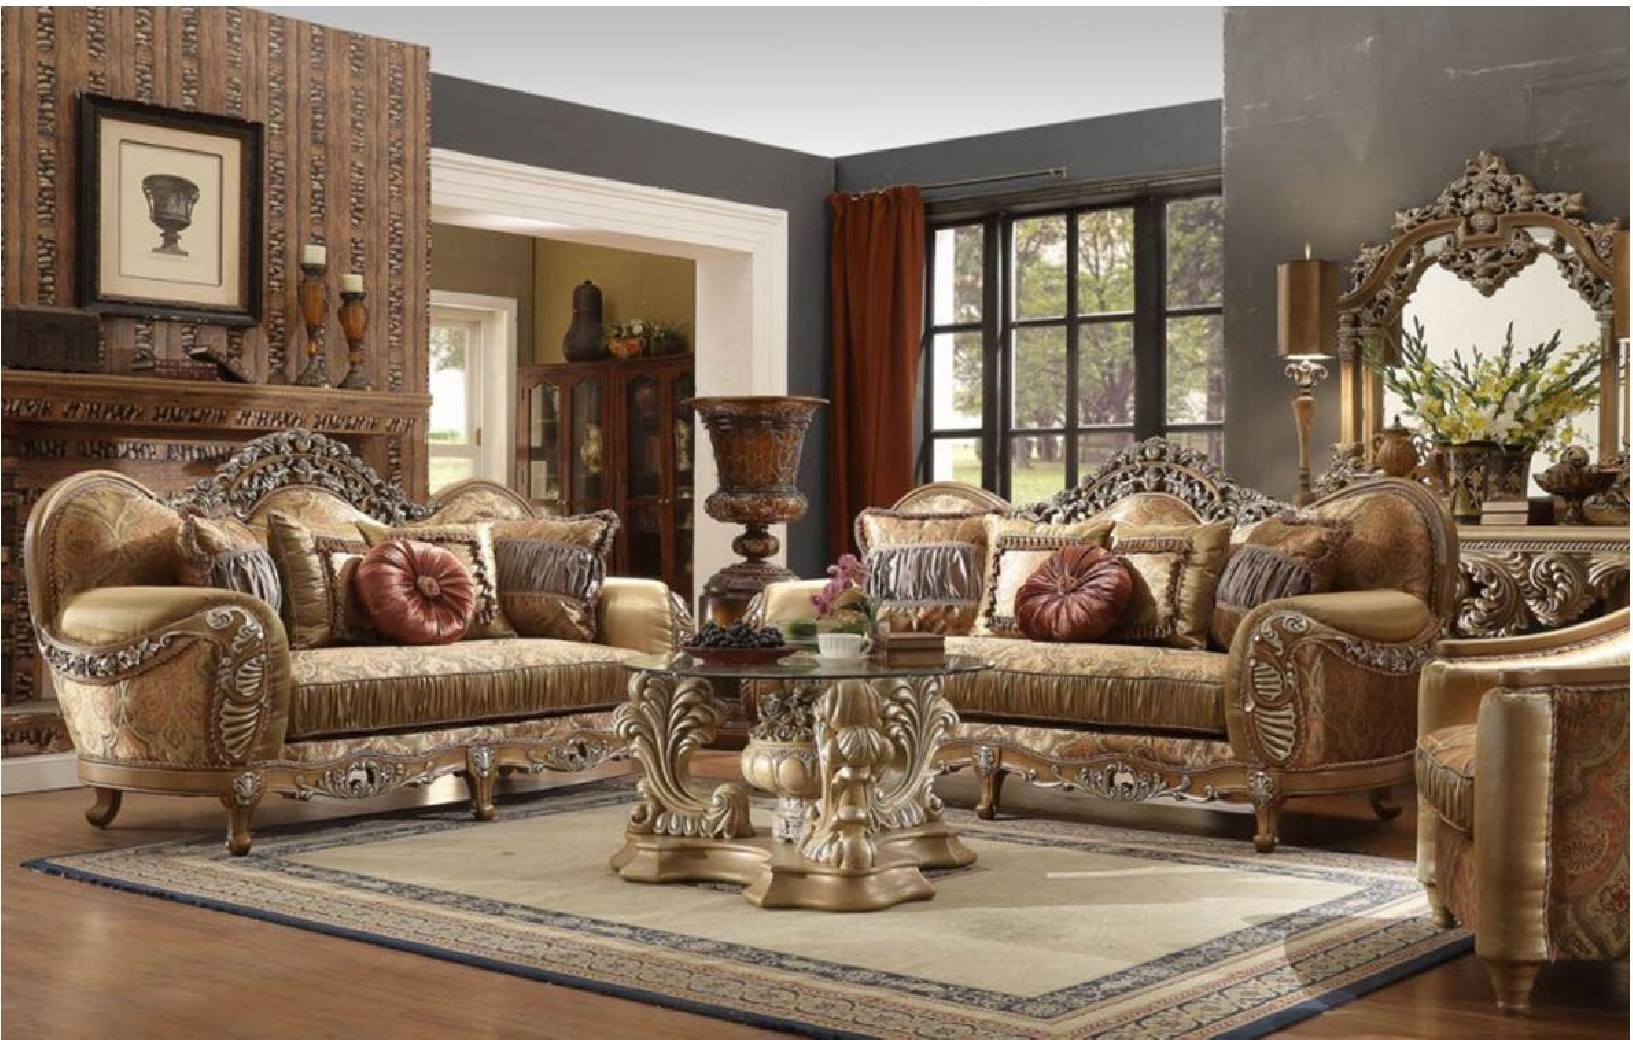 Hd 622 homey design upholstery living room set victorian for Living estilo clasico